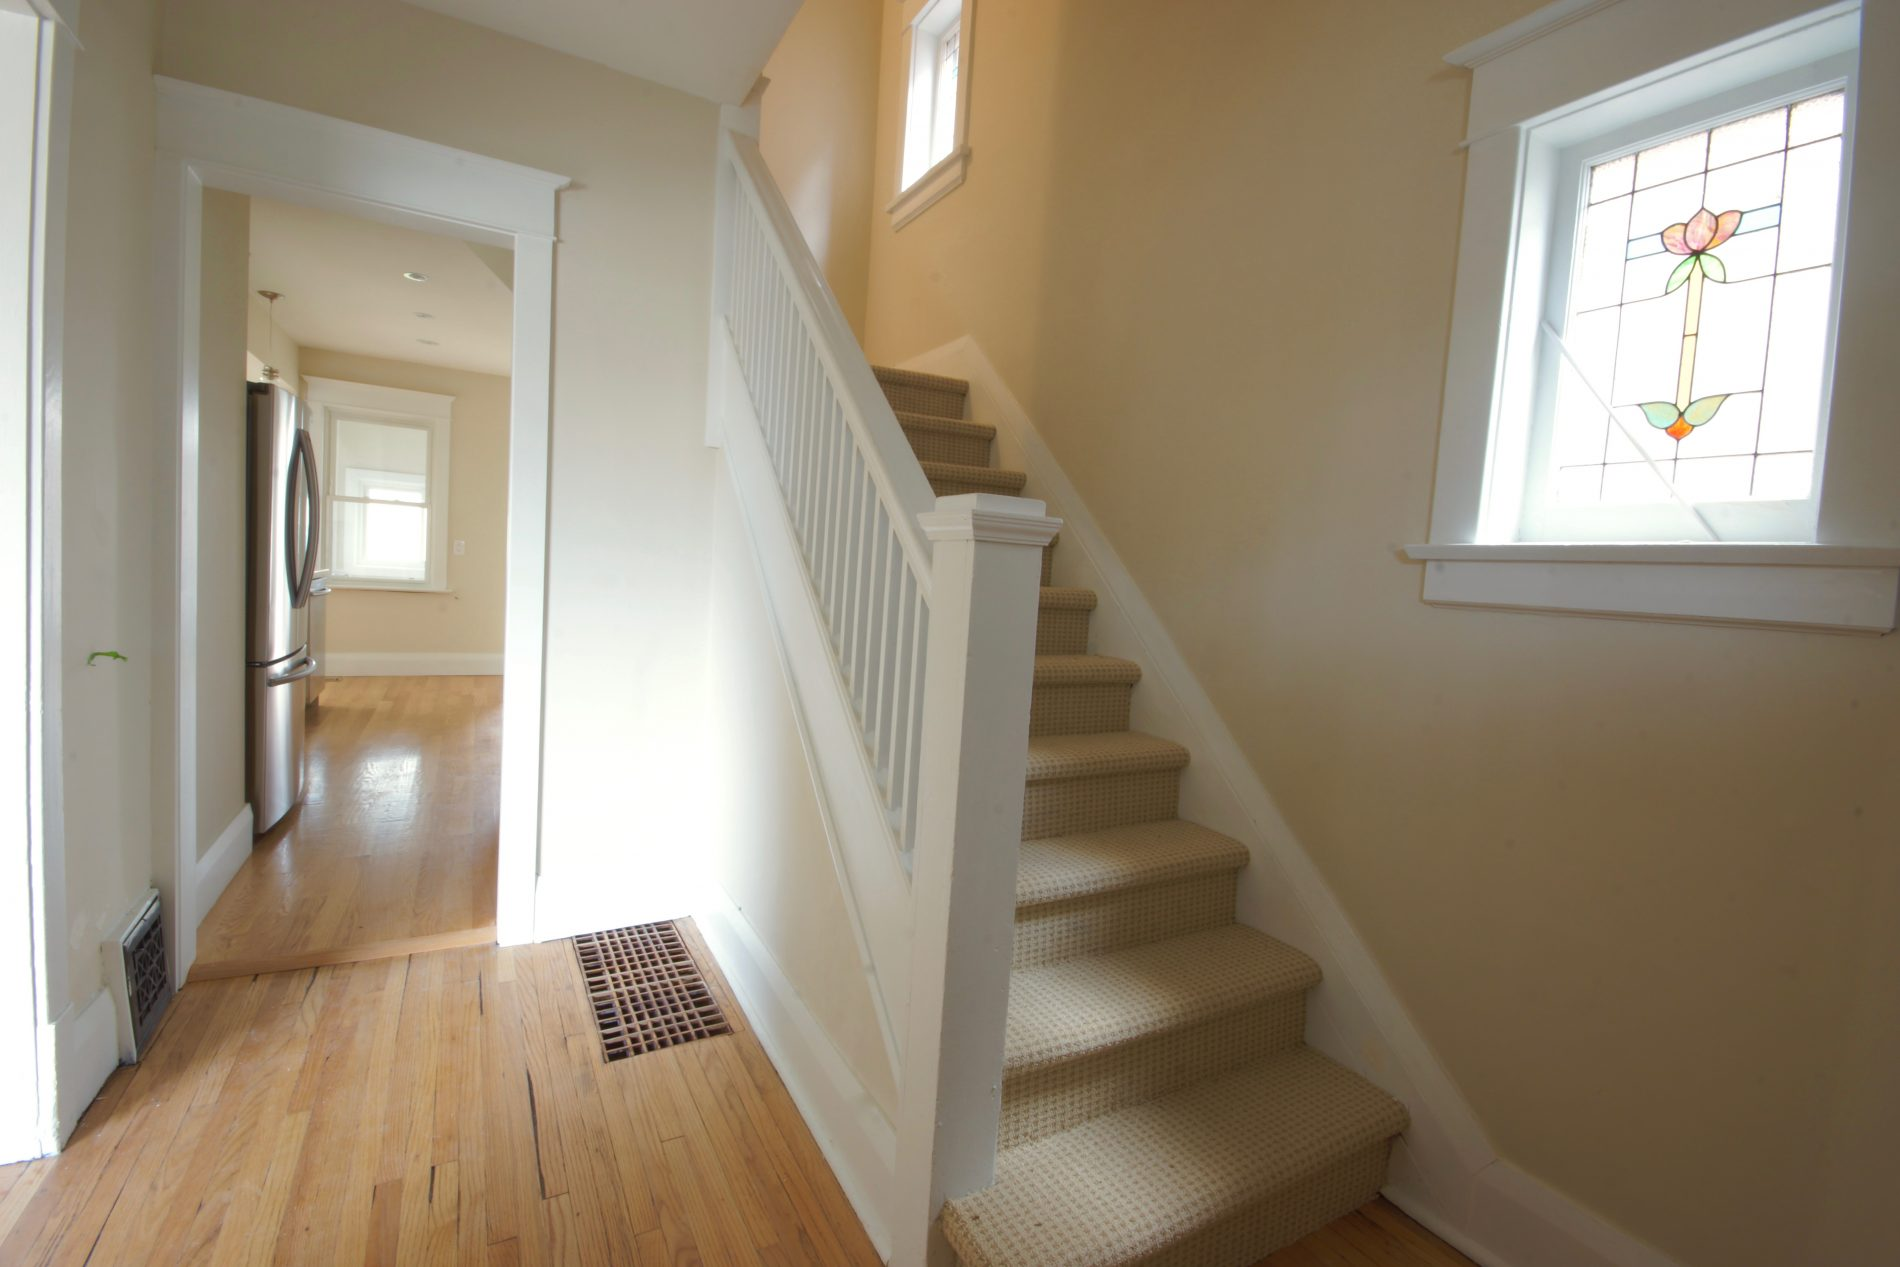 Wolverleigh Blvd. – Toronto Danforth Whole House Renovation - Featured Image